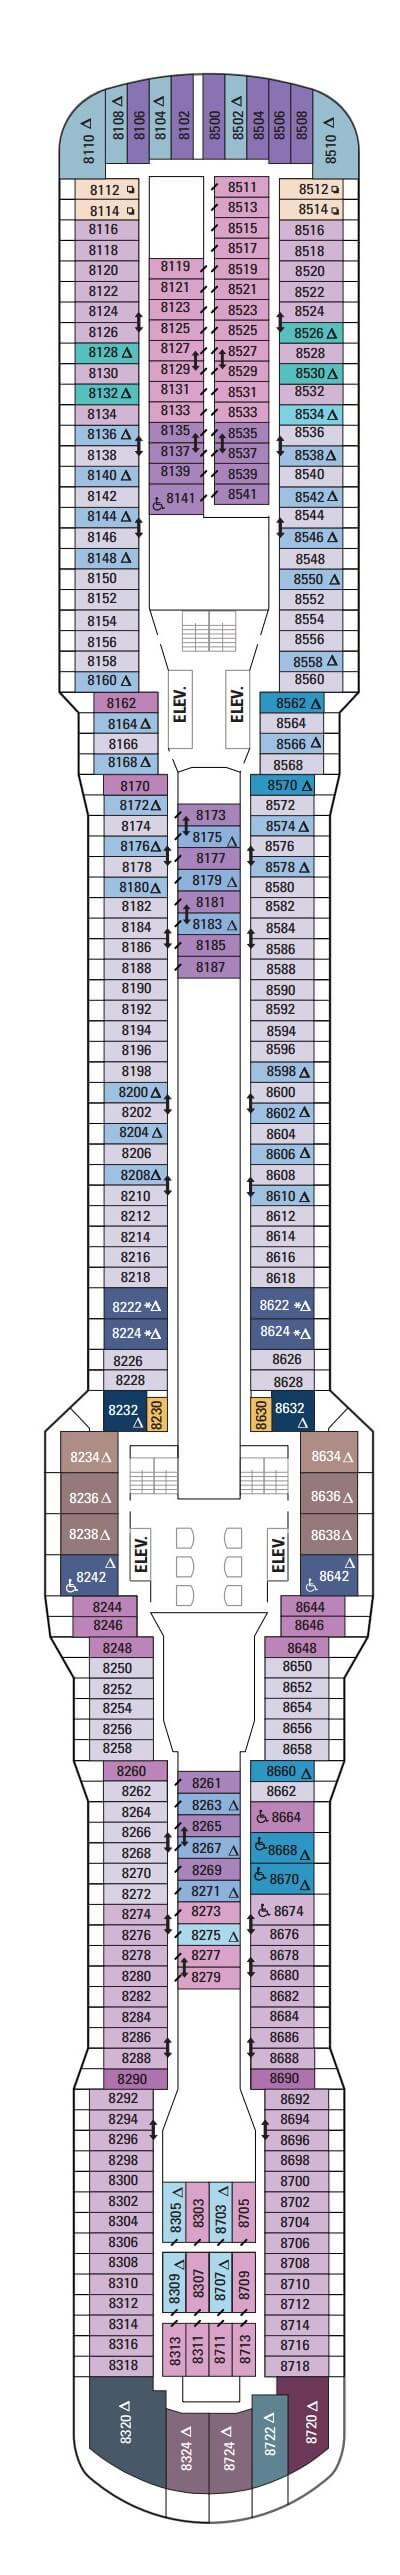 Anthem Of The Seas Deck 8 layout